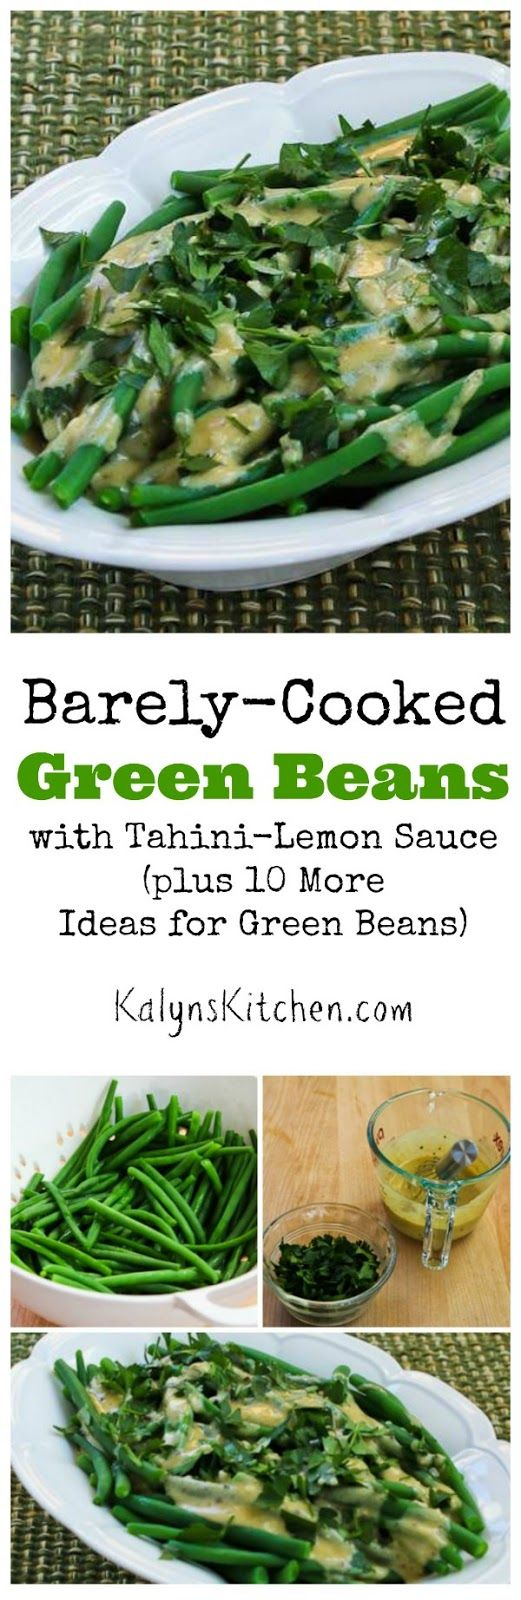 Barely-Cooked Green Beans with Tahini-Lemon Sauce are great for a ...